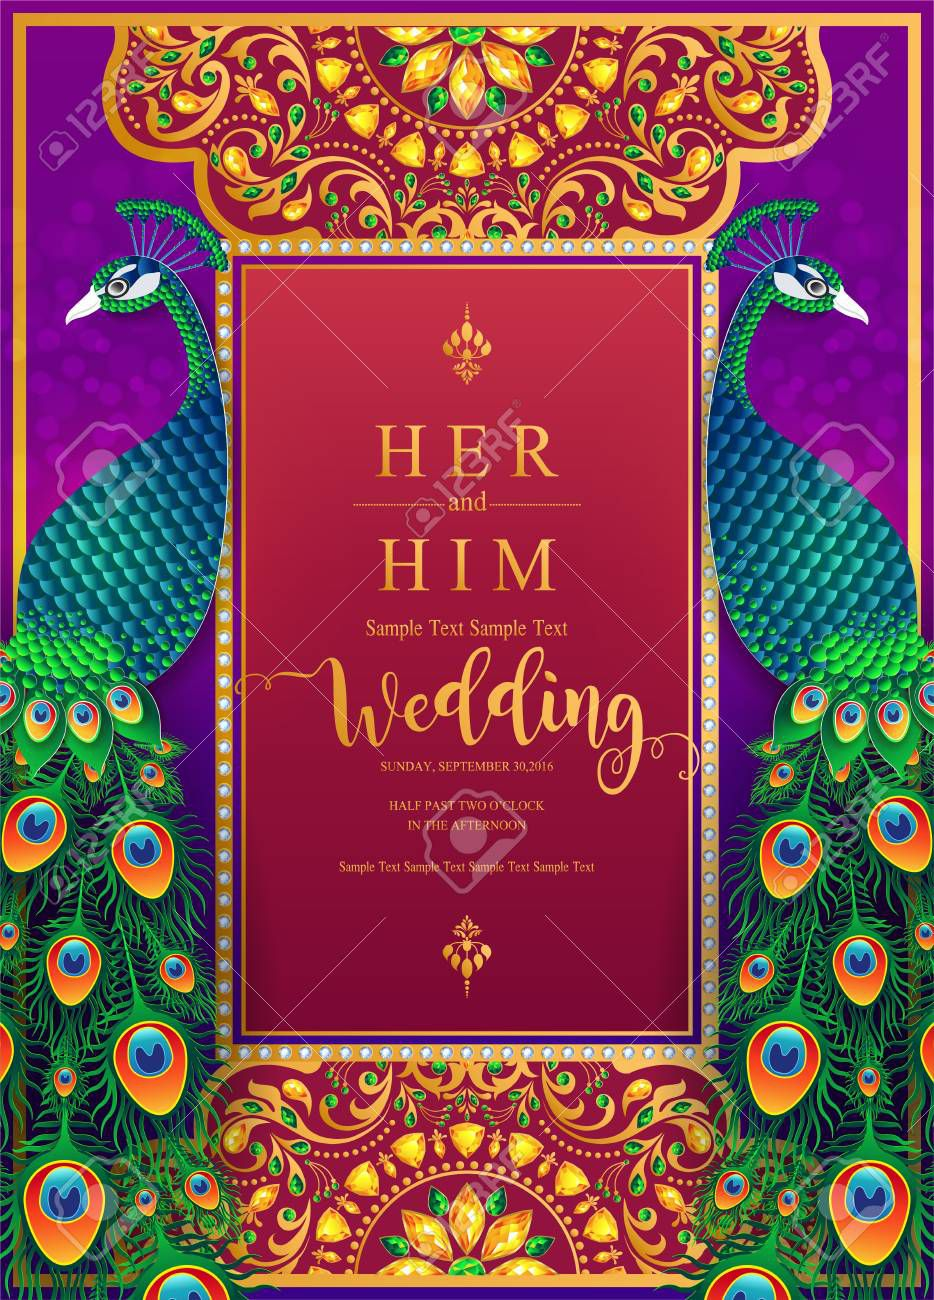 007 Amazing Indian Wedding Invitation Template Picture  Psd Free Download Marriage Online For FriendFull